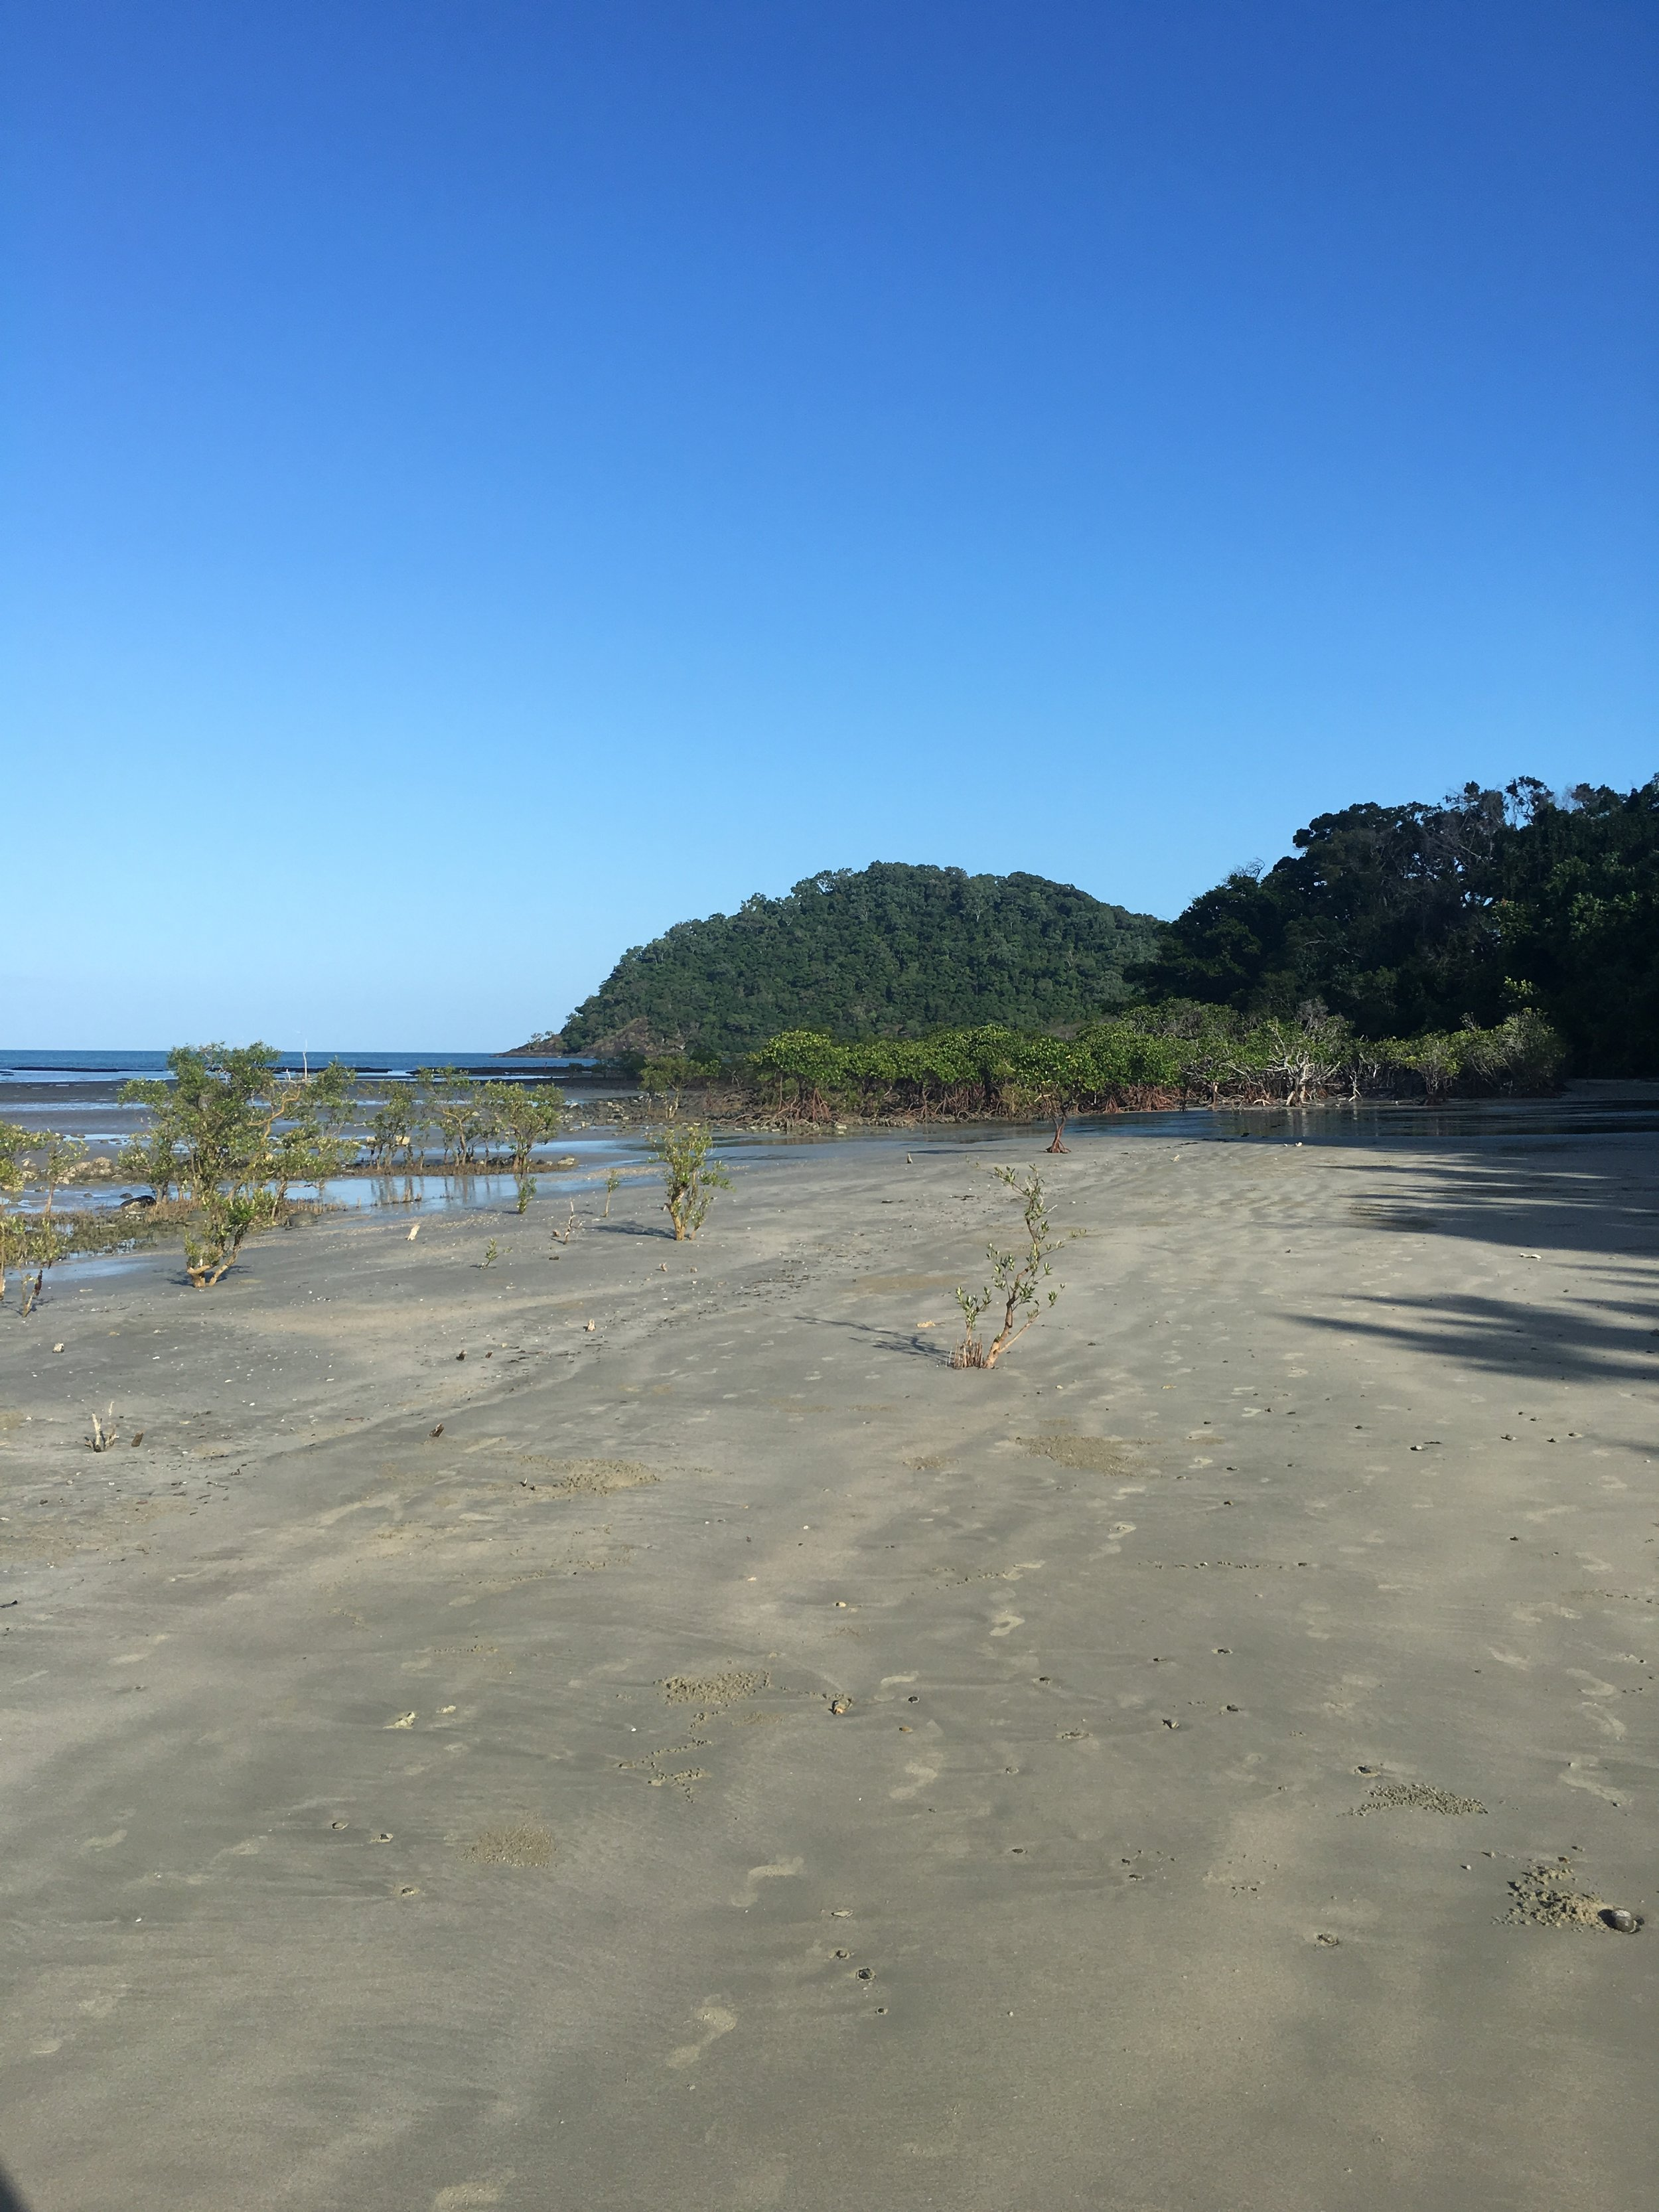 Mangroves on the Cape Tribulation beach. The tree-covered hill in the background is the cape itself.